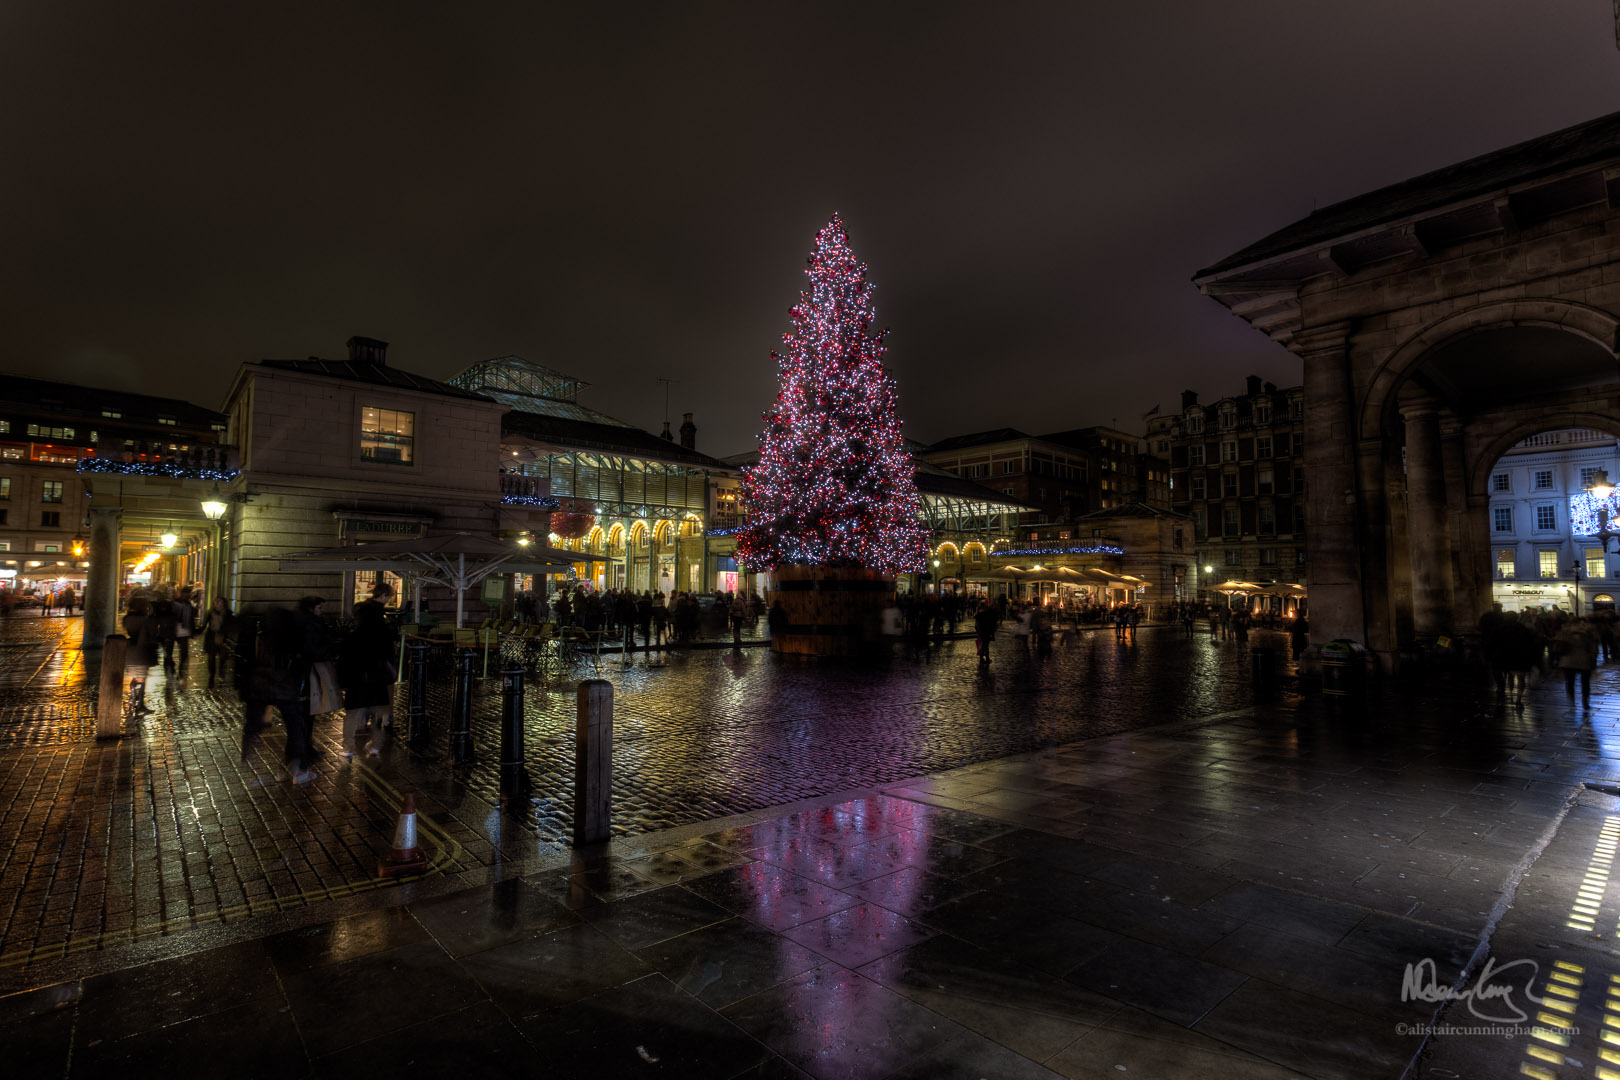 Covent Garden's Christmas Tree 2013